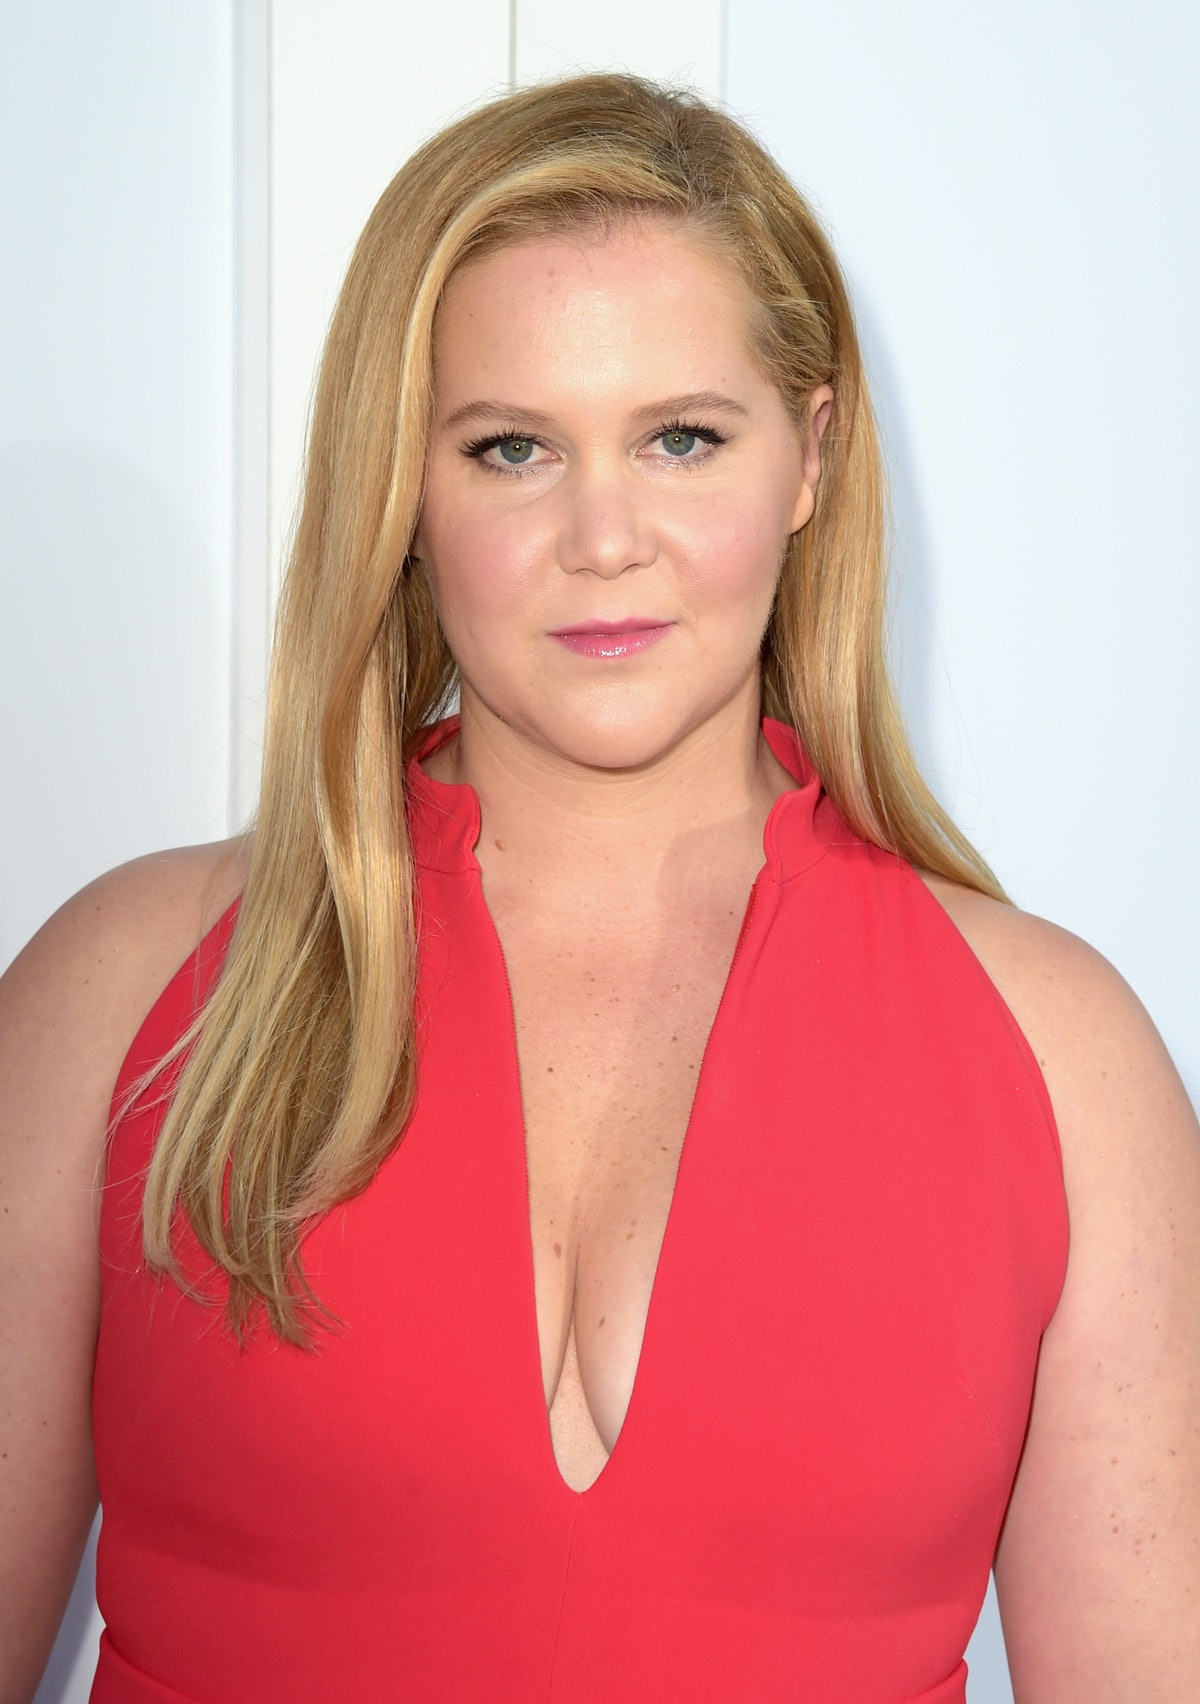 This Photo Of Amy Schumer In The Hospital With Pregnancy Issues Will Devastate You